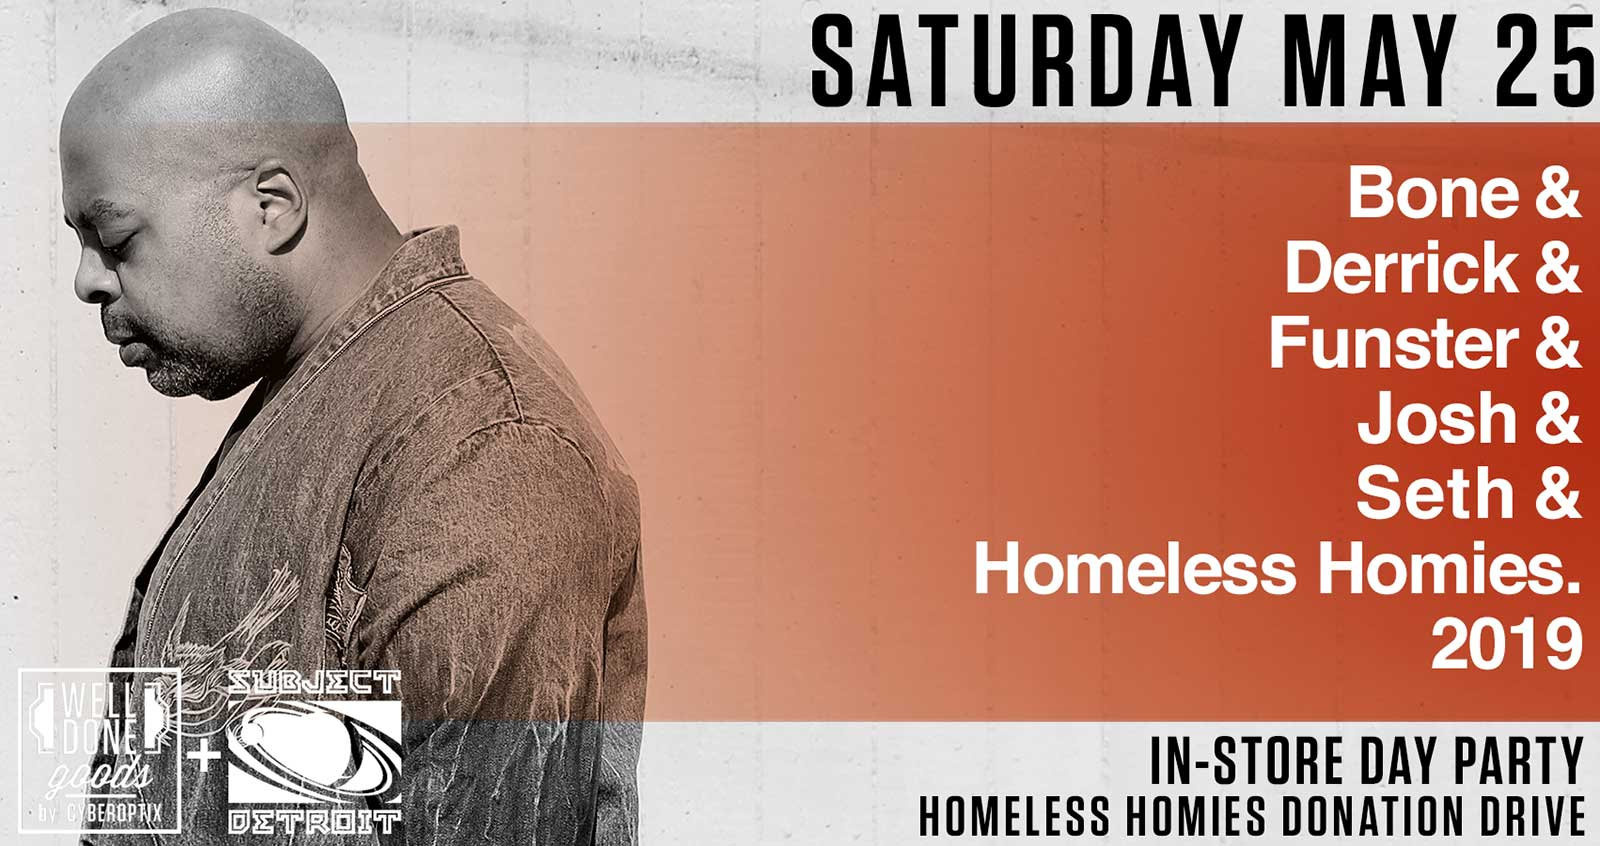 Dj Bone, Homeless Homies Party benefit, Movement weekend Sat May 25